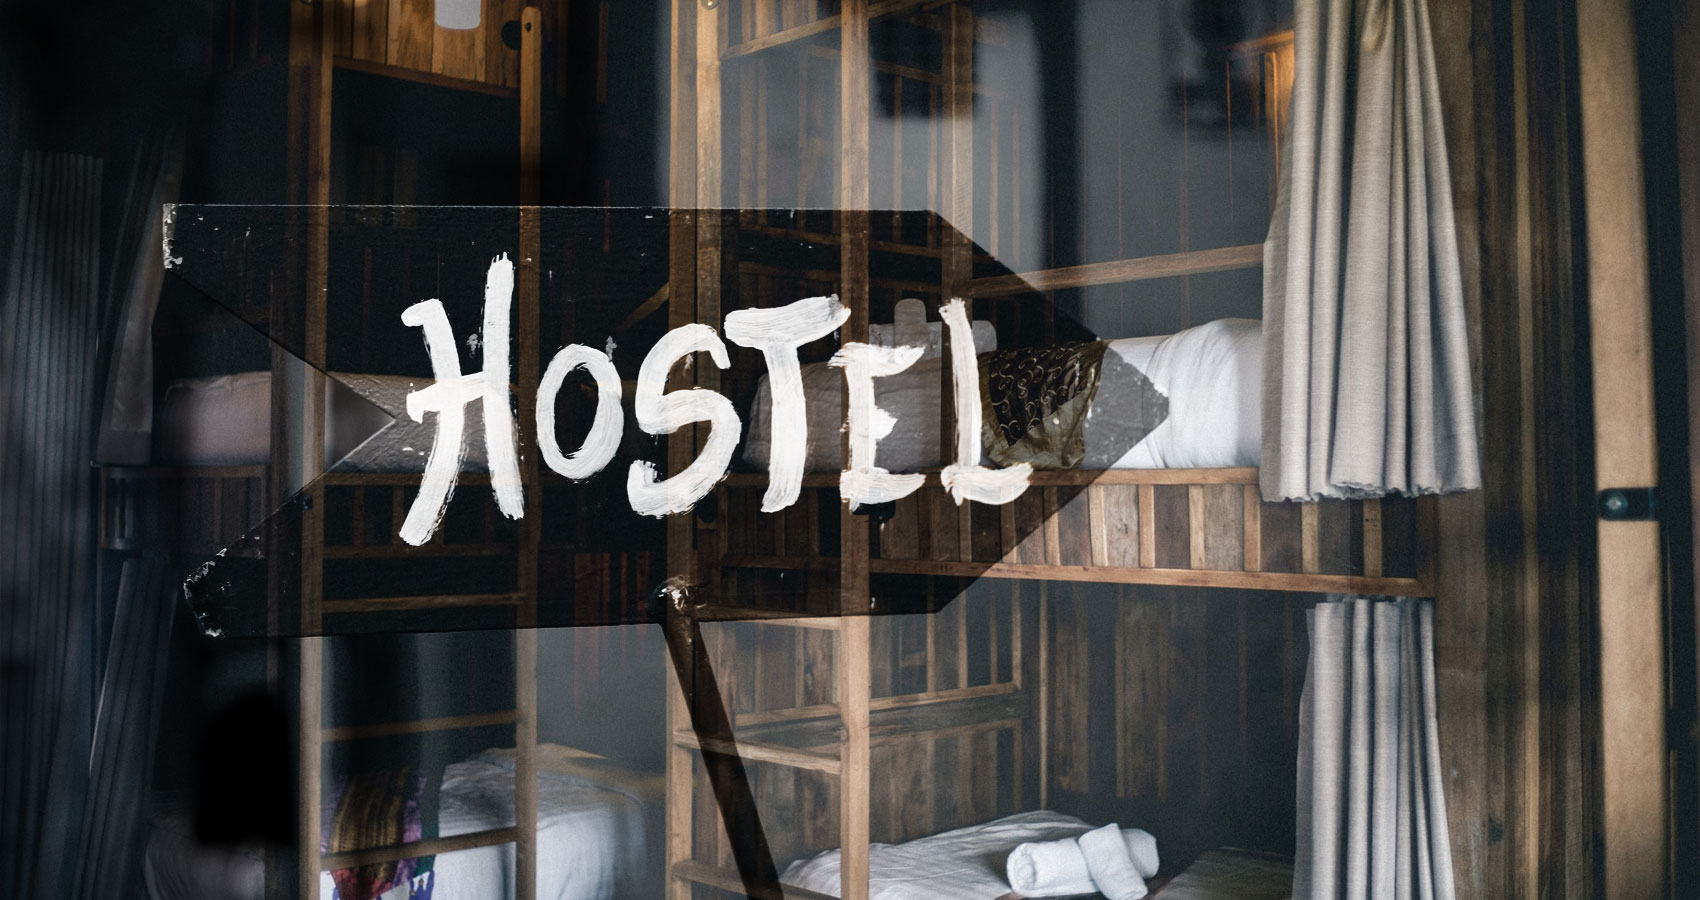 Hostel Neotiations, poem by Jordan Trethewey at Spillwords.com